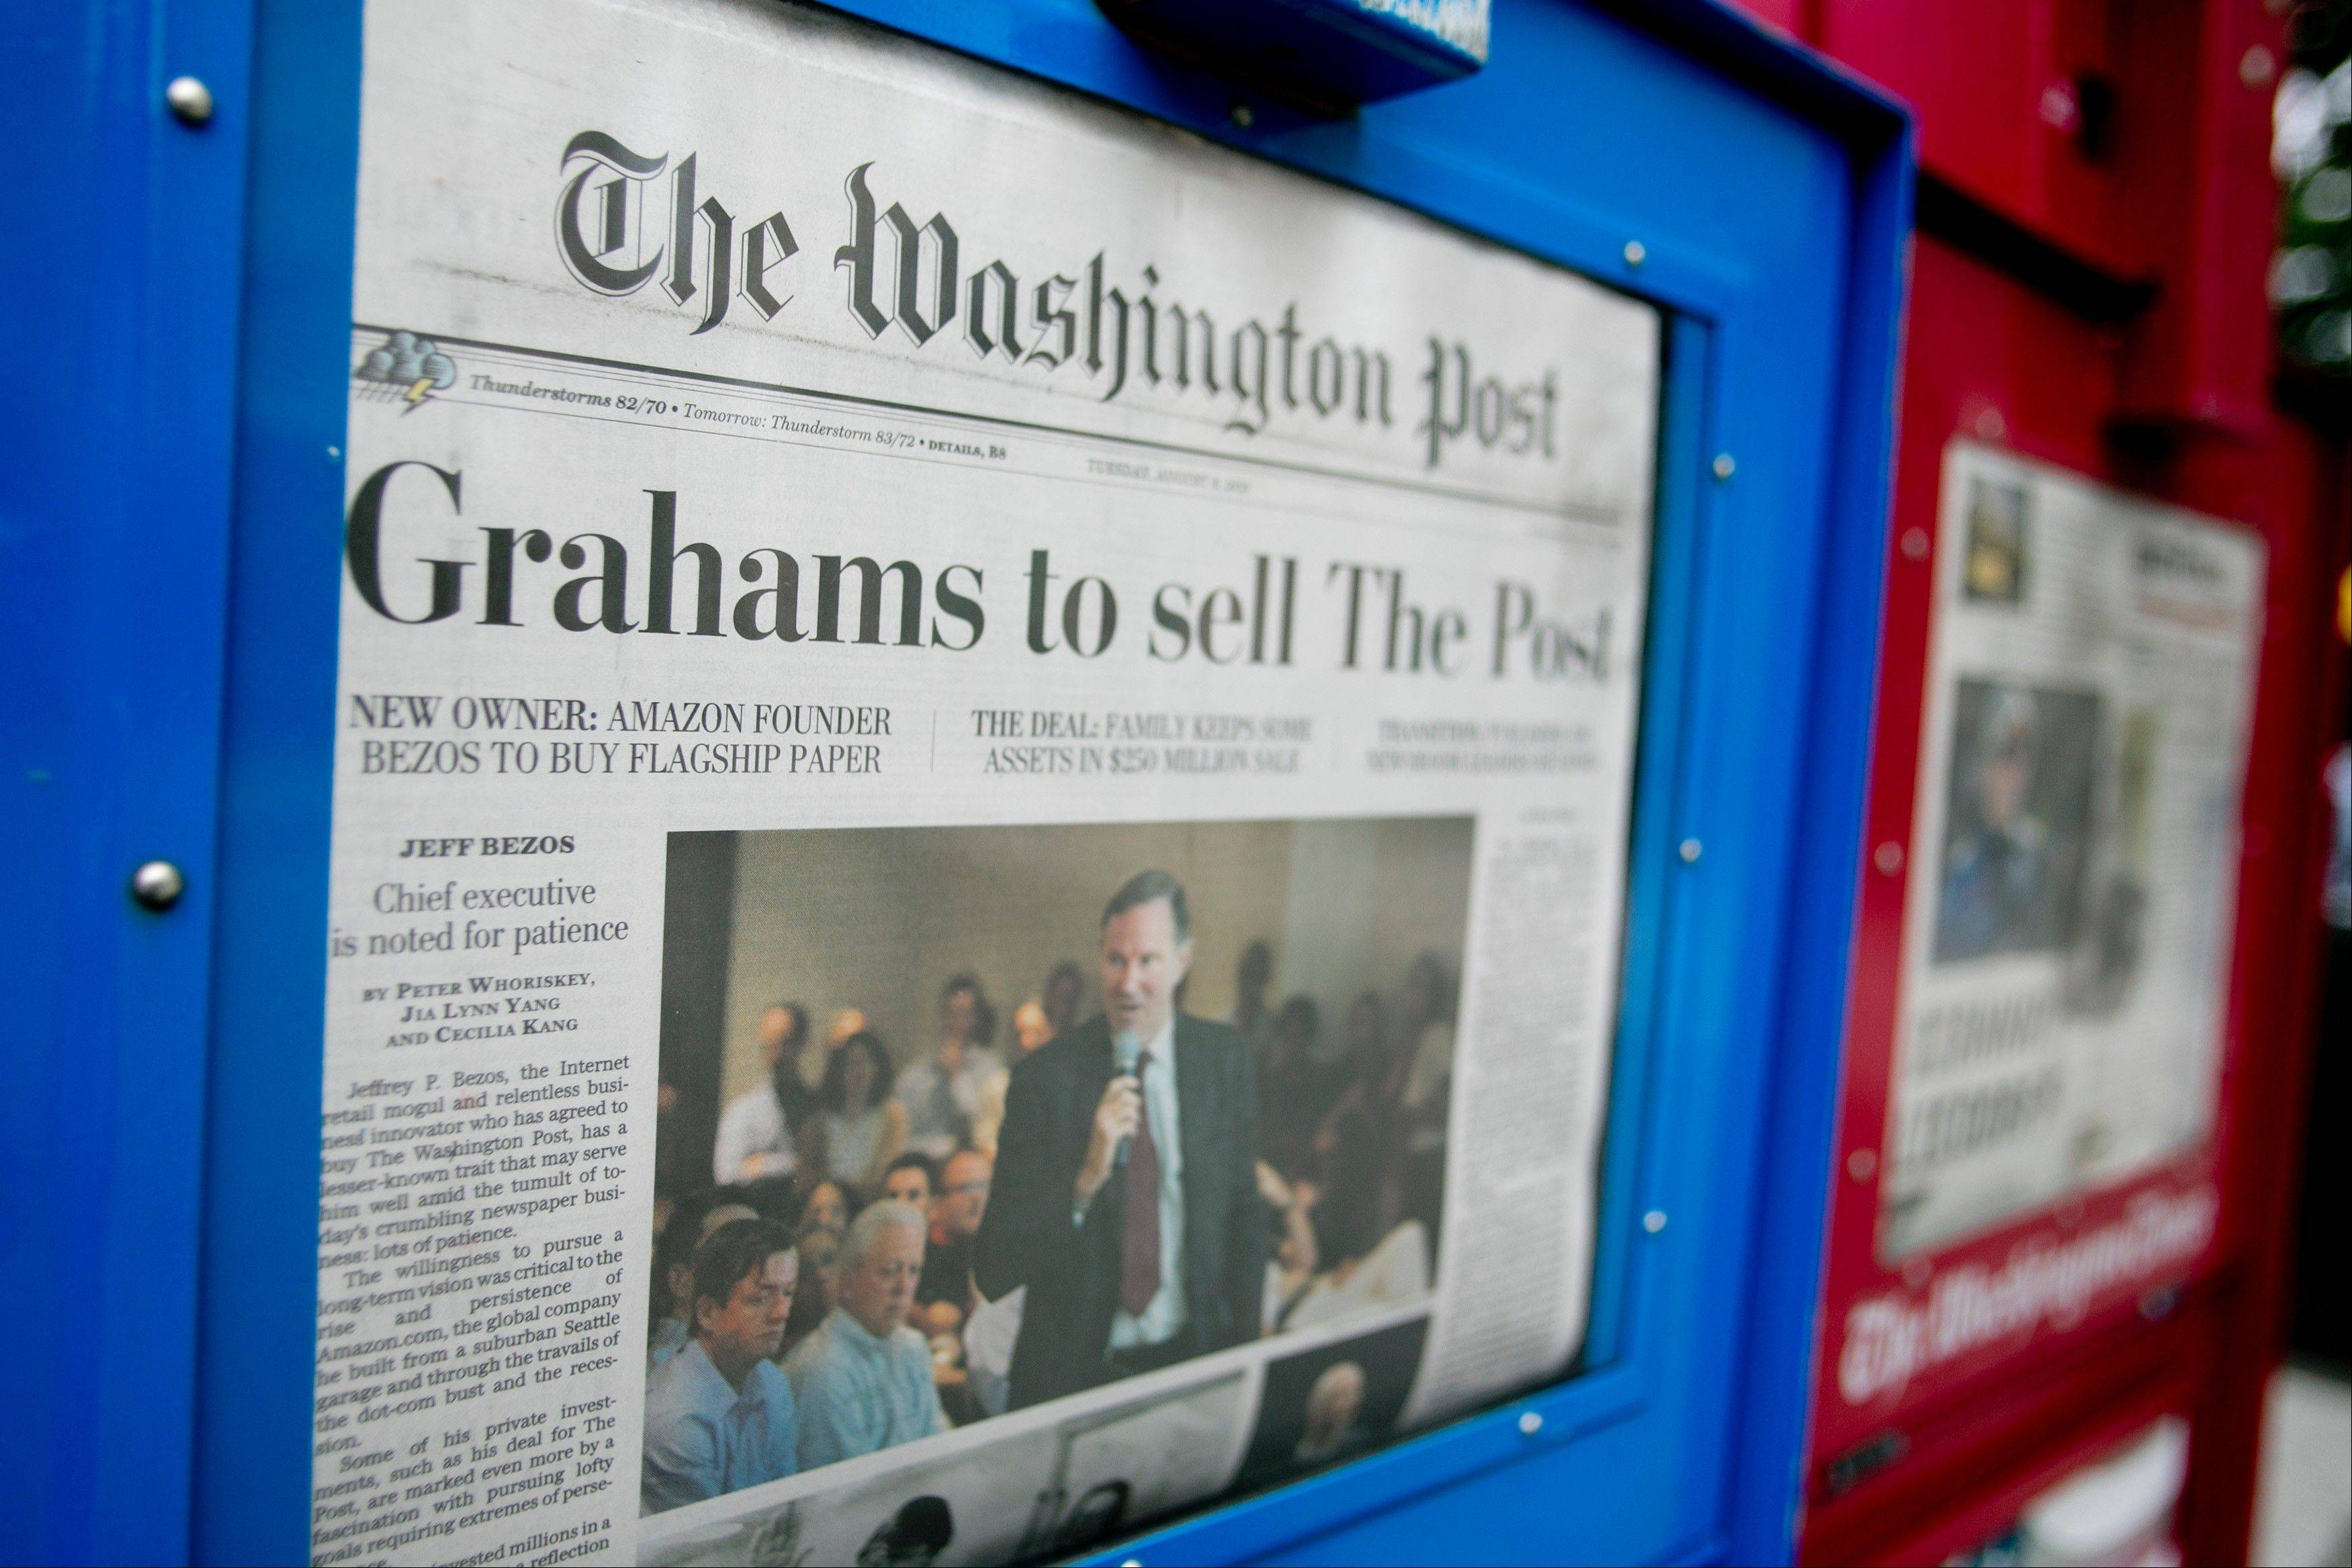 The news that the owners of The Washington Post are to sell the newspaper to billionaire Jeff Bezos is displayed on the front page of the newspaper in Washington, D.